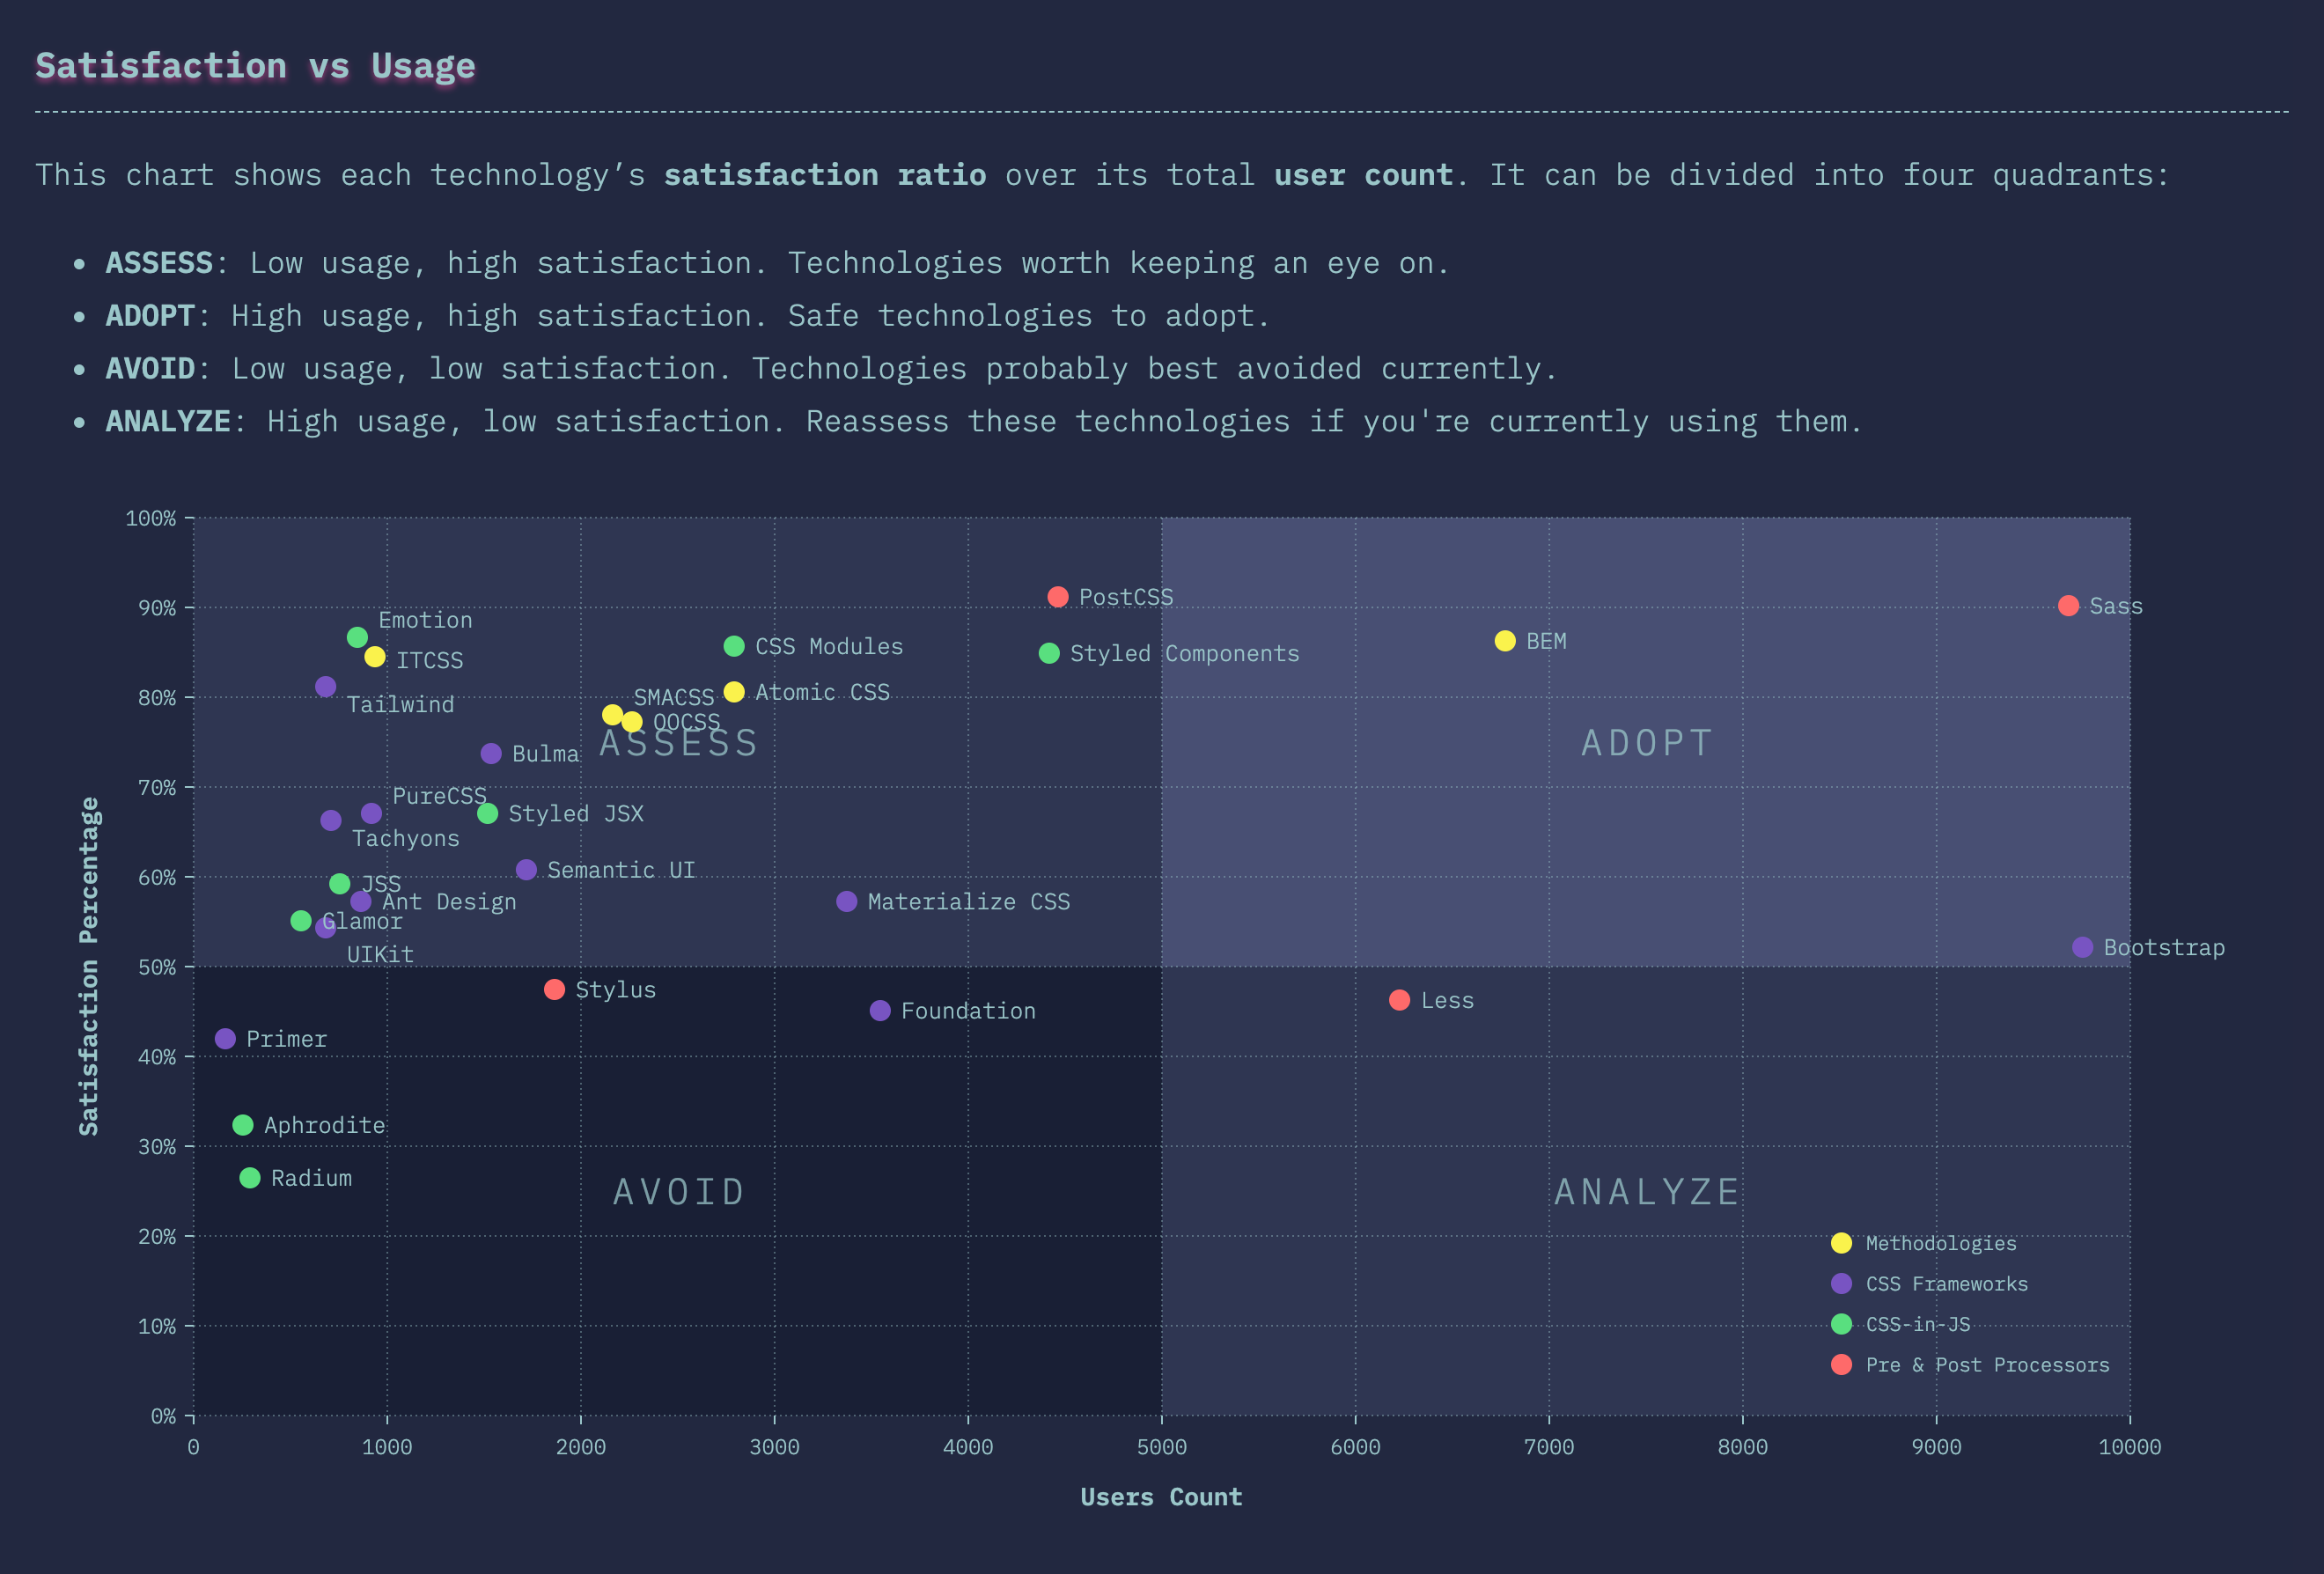 technologies_tools-scatterplot.png